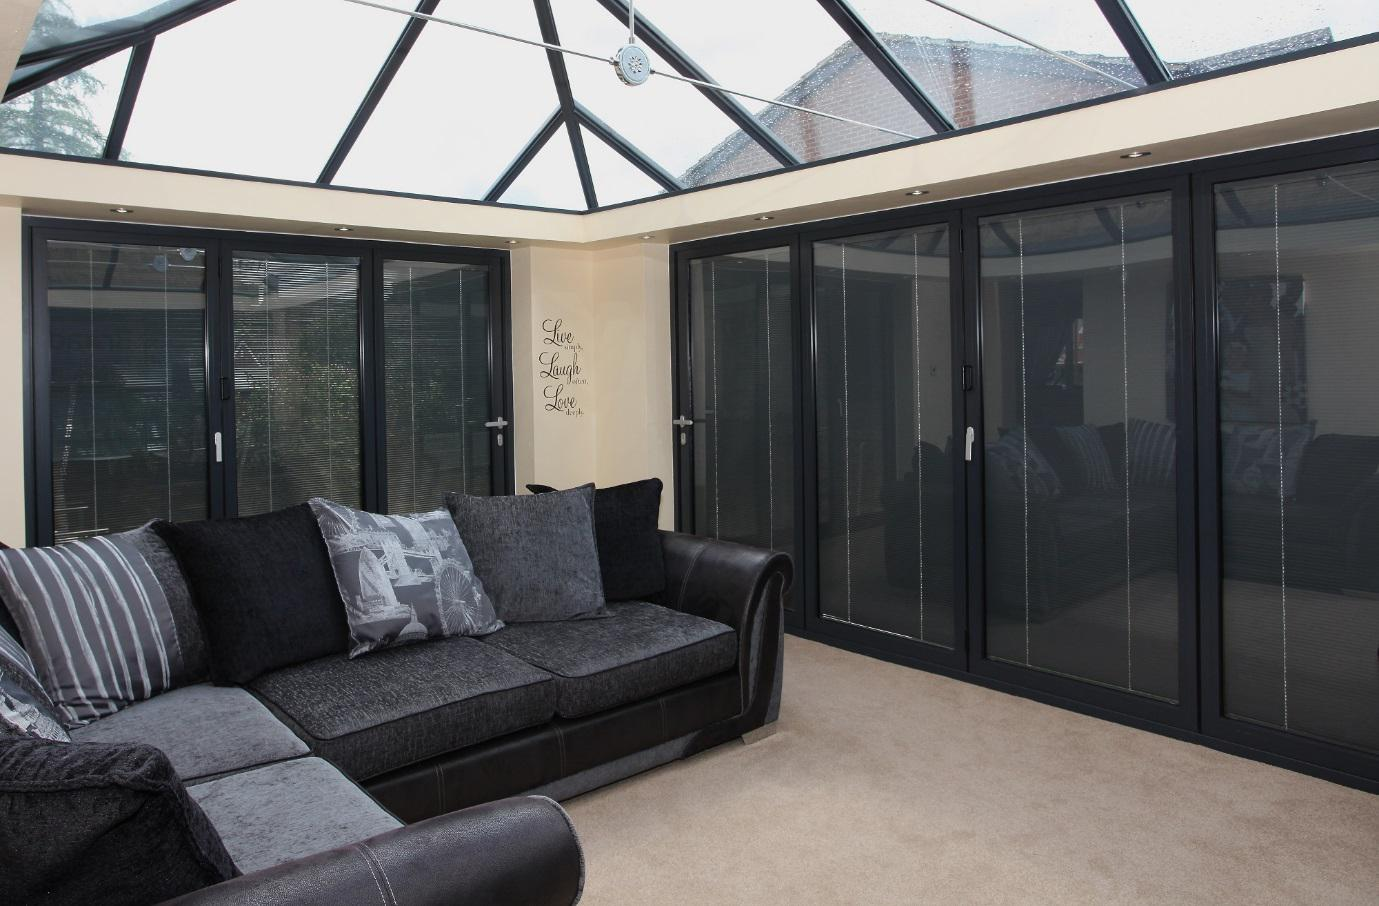 Morley glass glazing offers an exclusive shade of grey for Double glazing offers